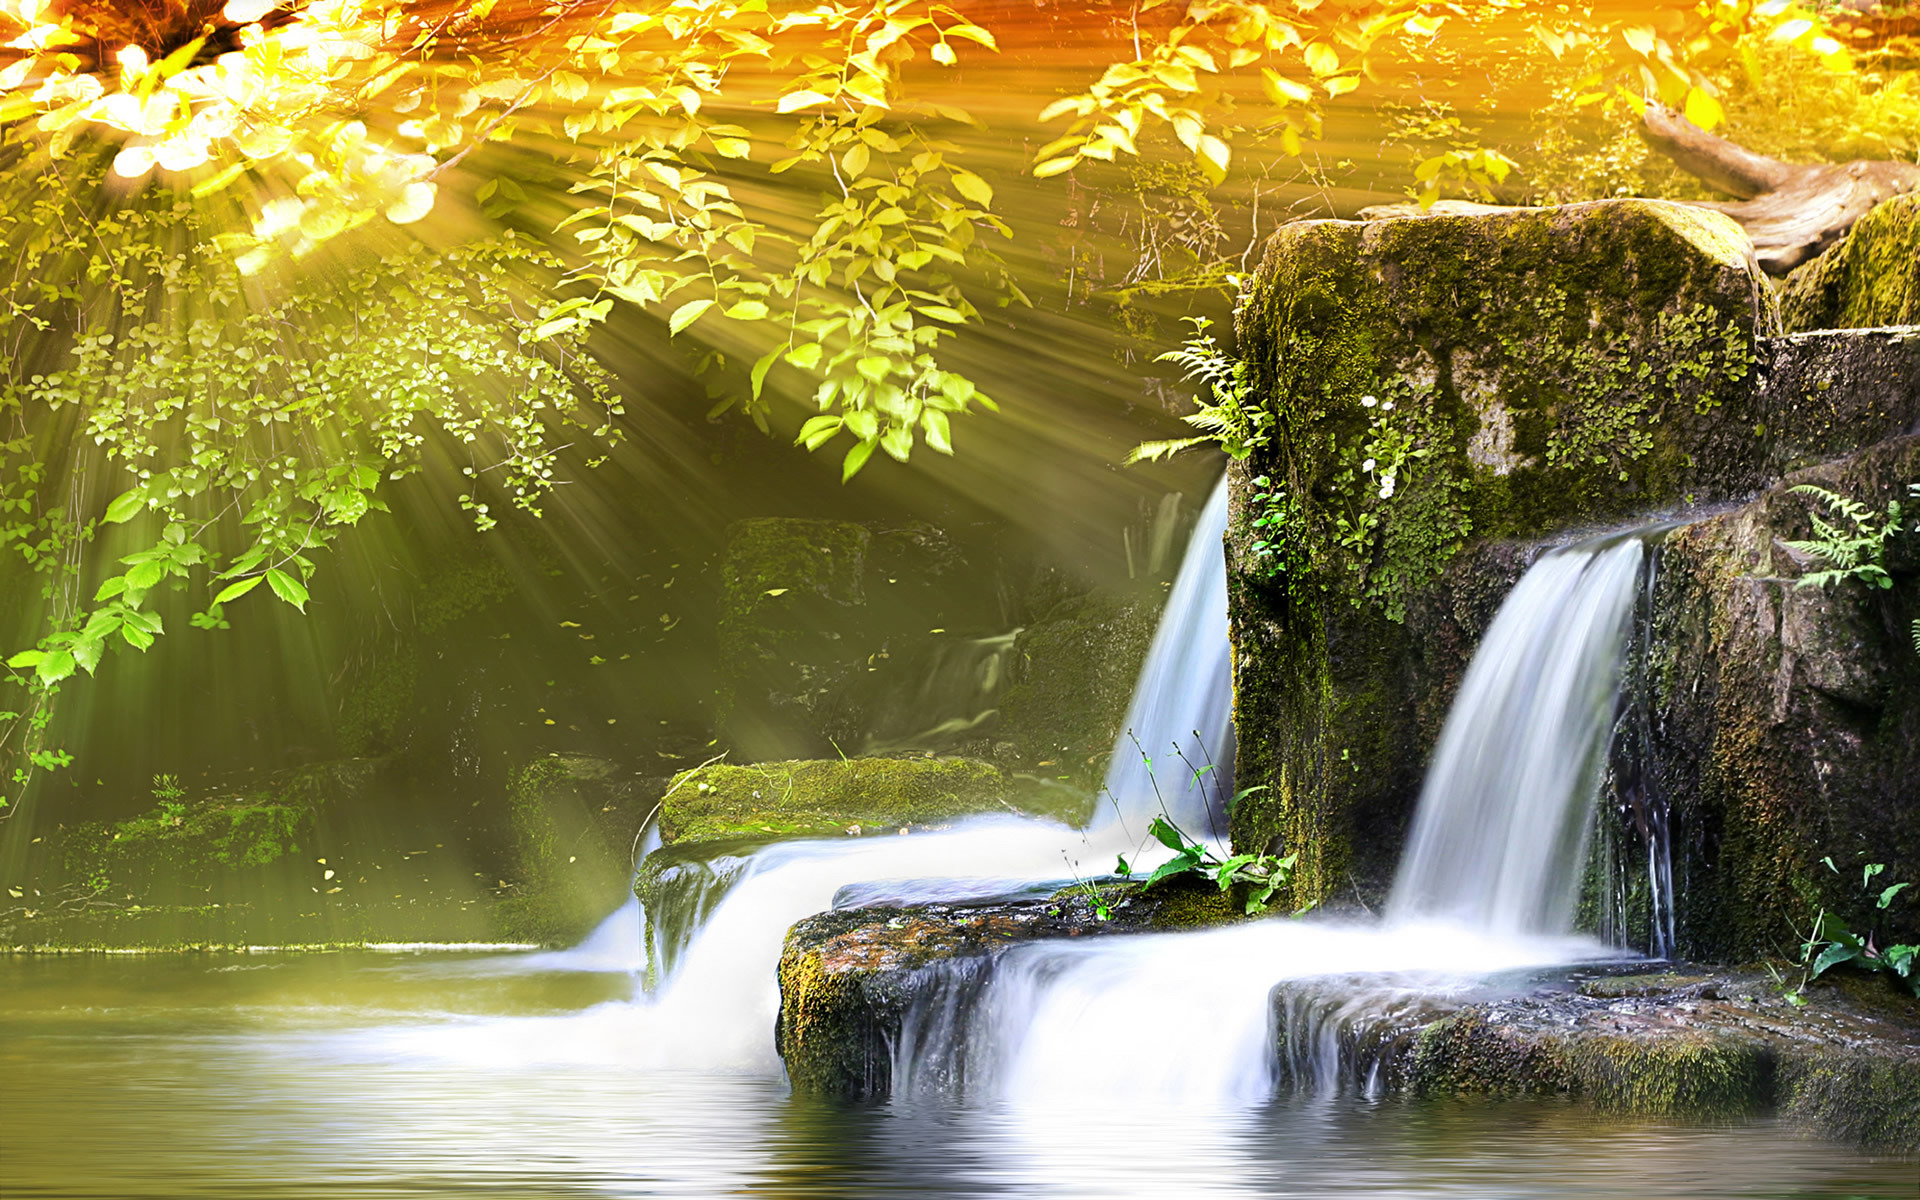 Nature Wallpapers 2014 Movie Hd Wallpapers